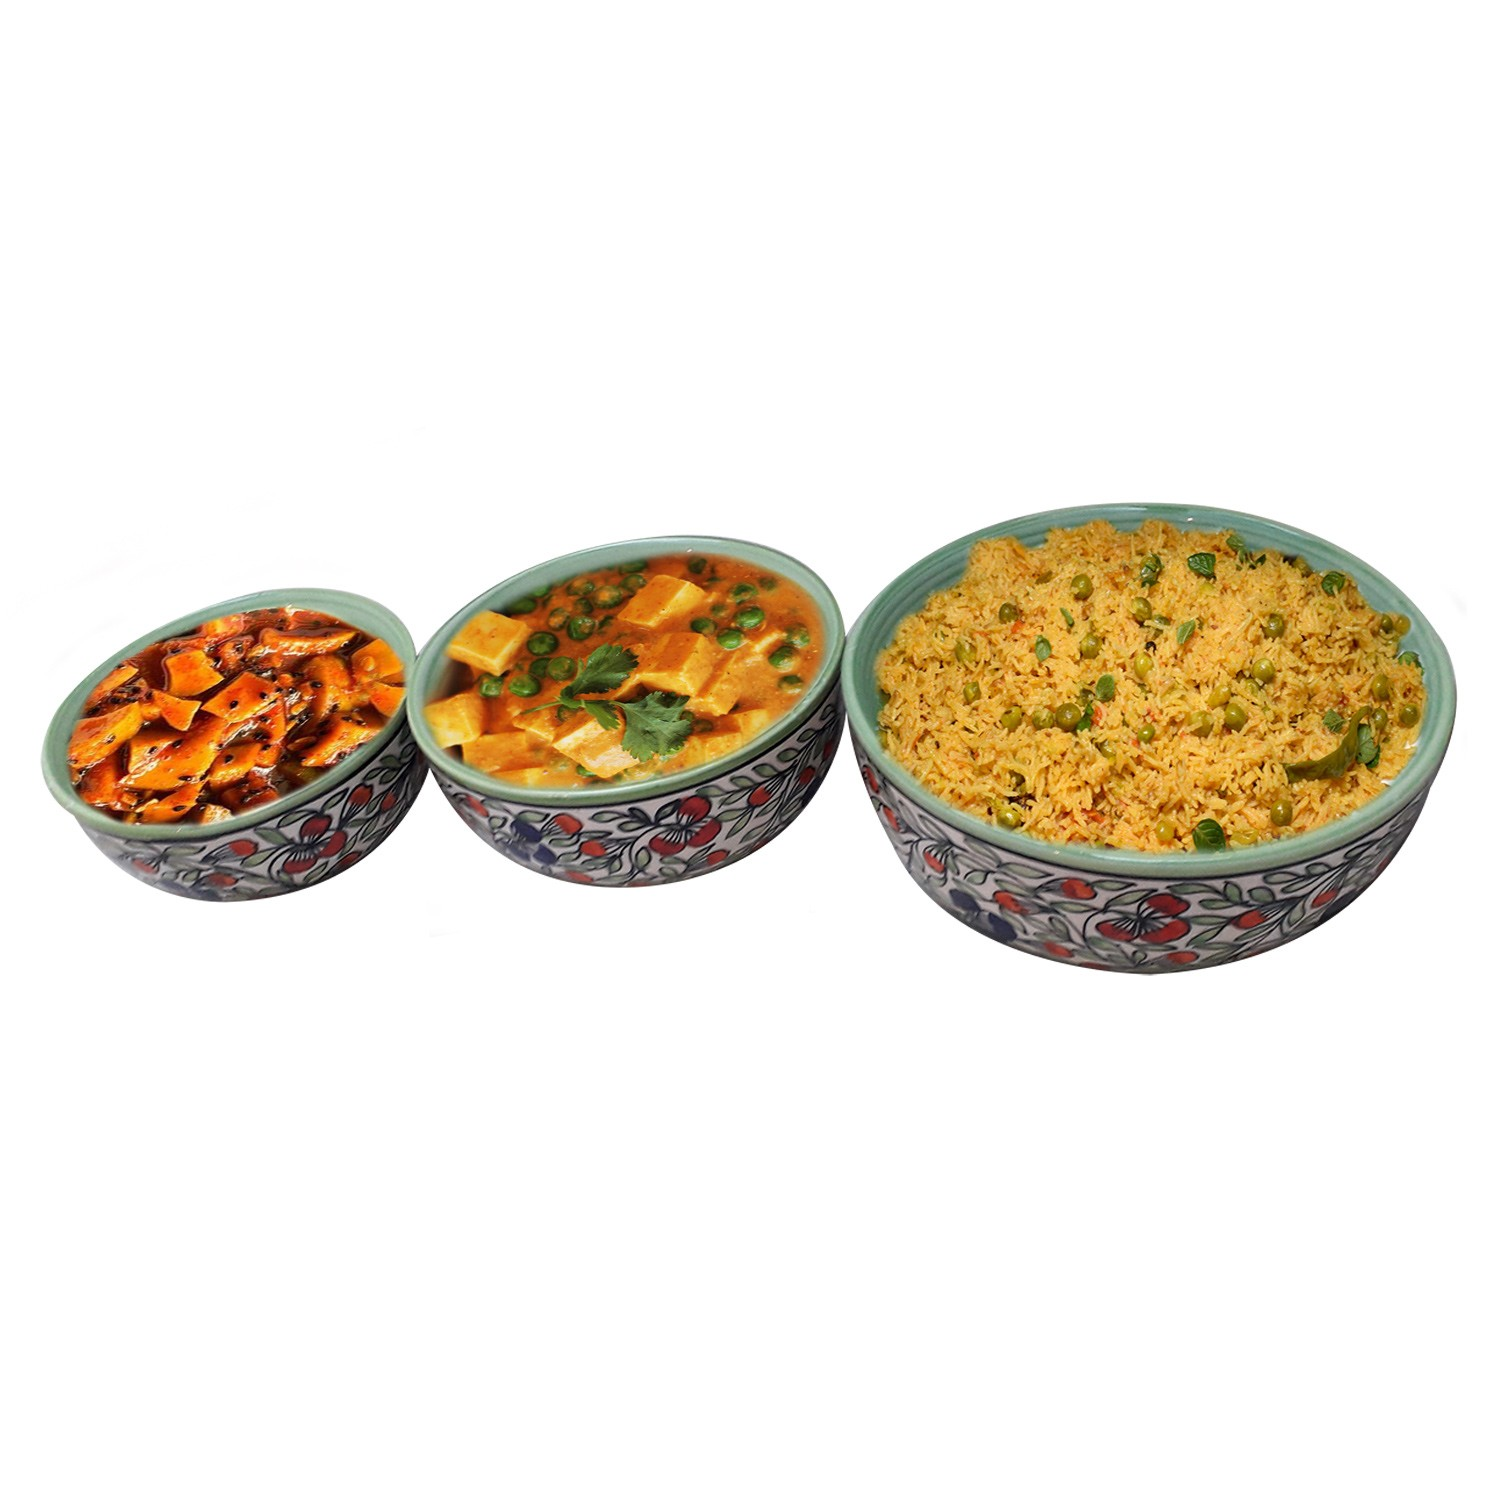 Exclusive Handmade Khurja Pottery Multicolor Set of 3 serving bowls by Awarded Artisans